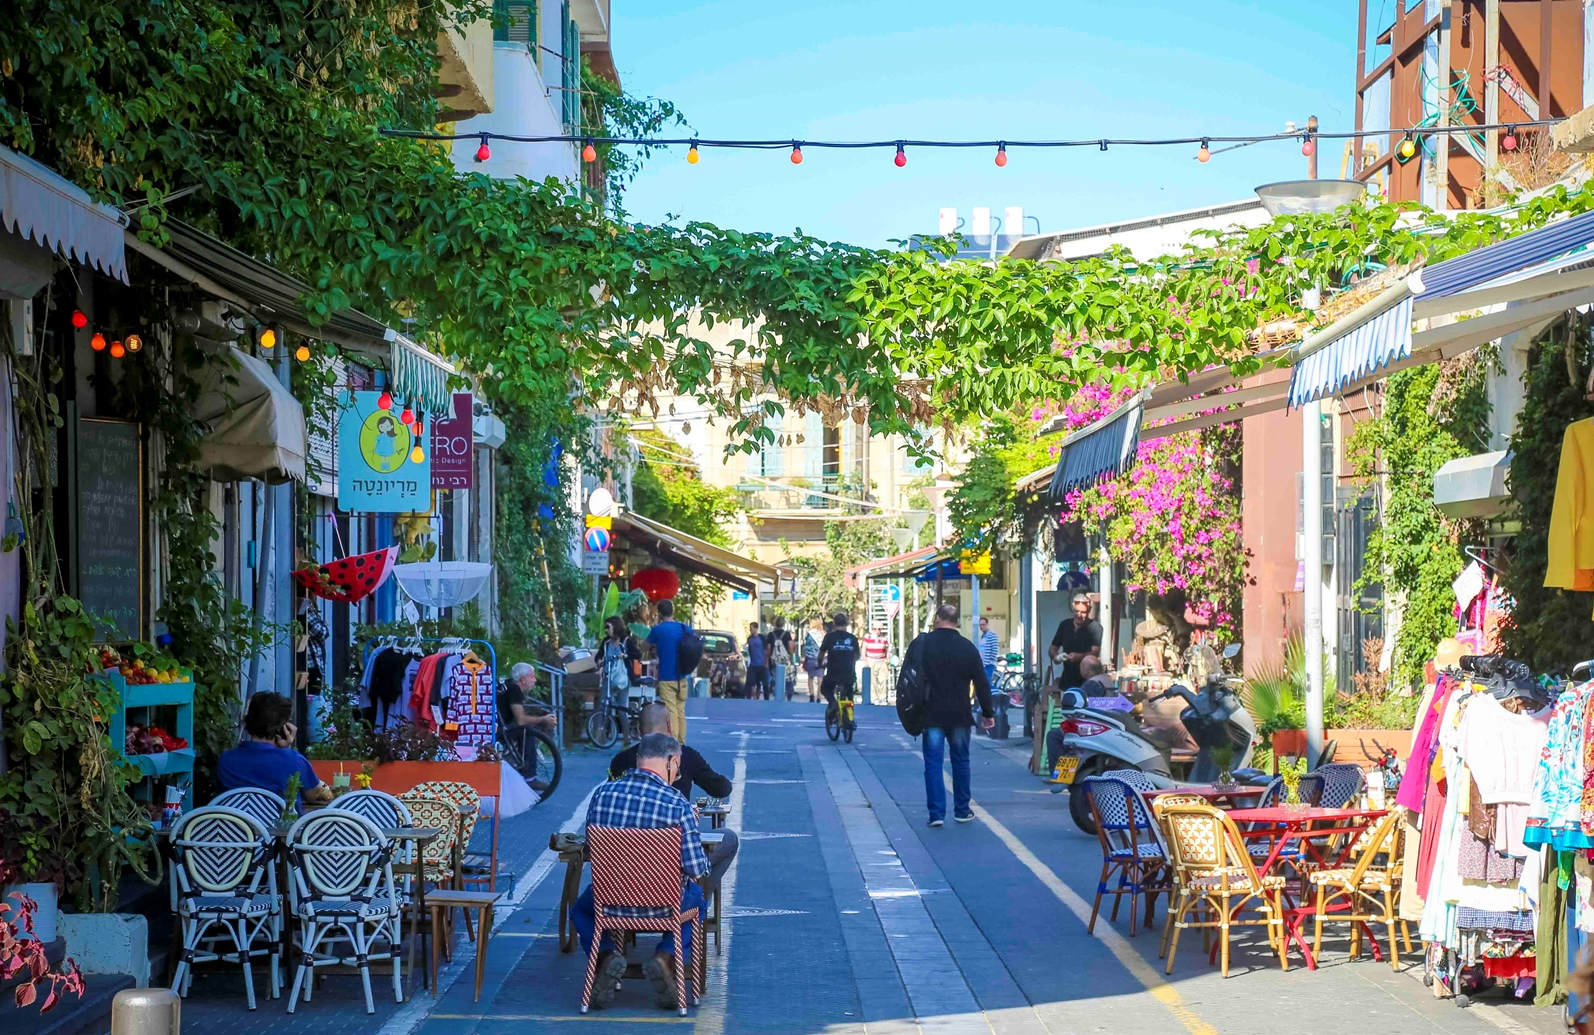 Jaffa is colorful any time of year. Photo by Guy Yechiely